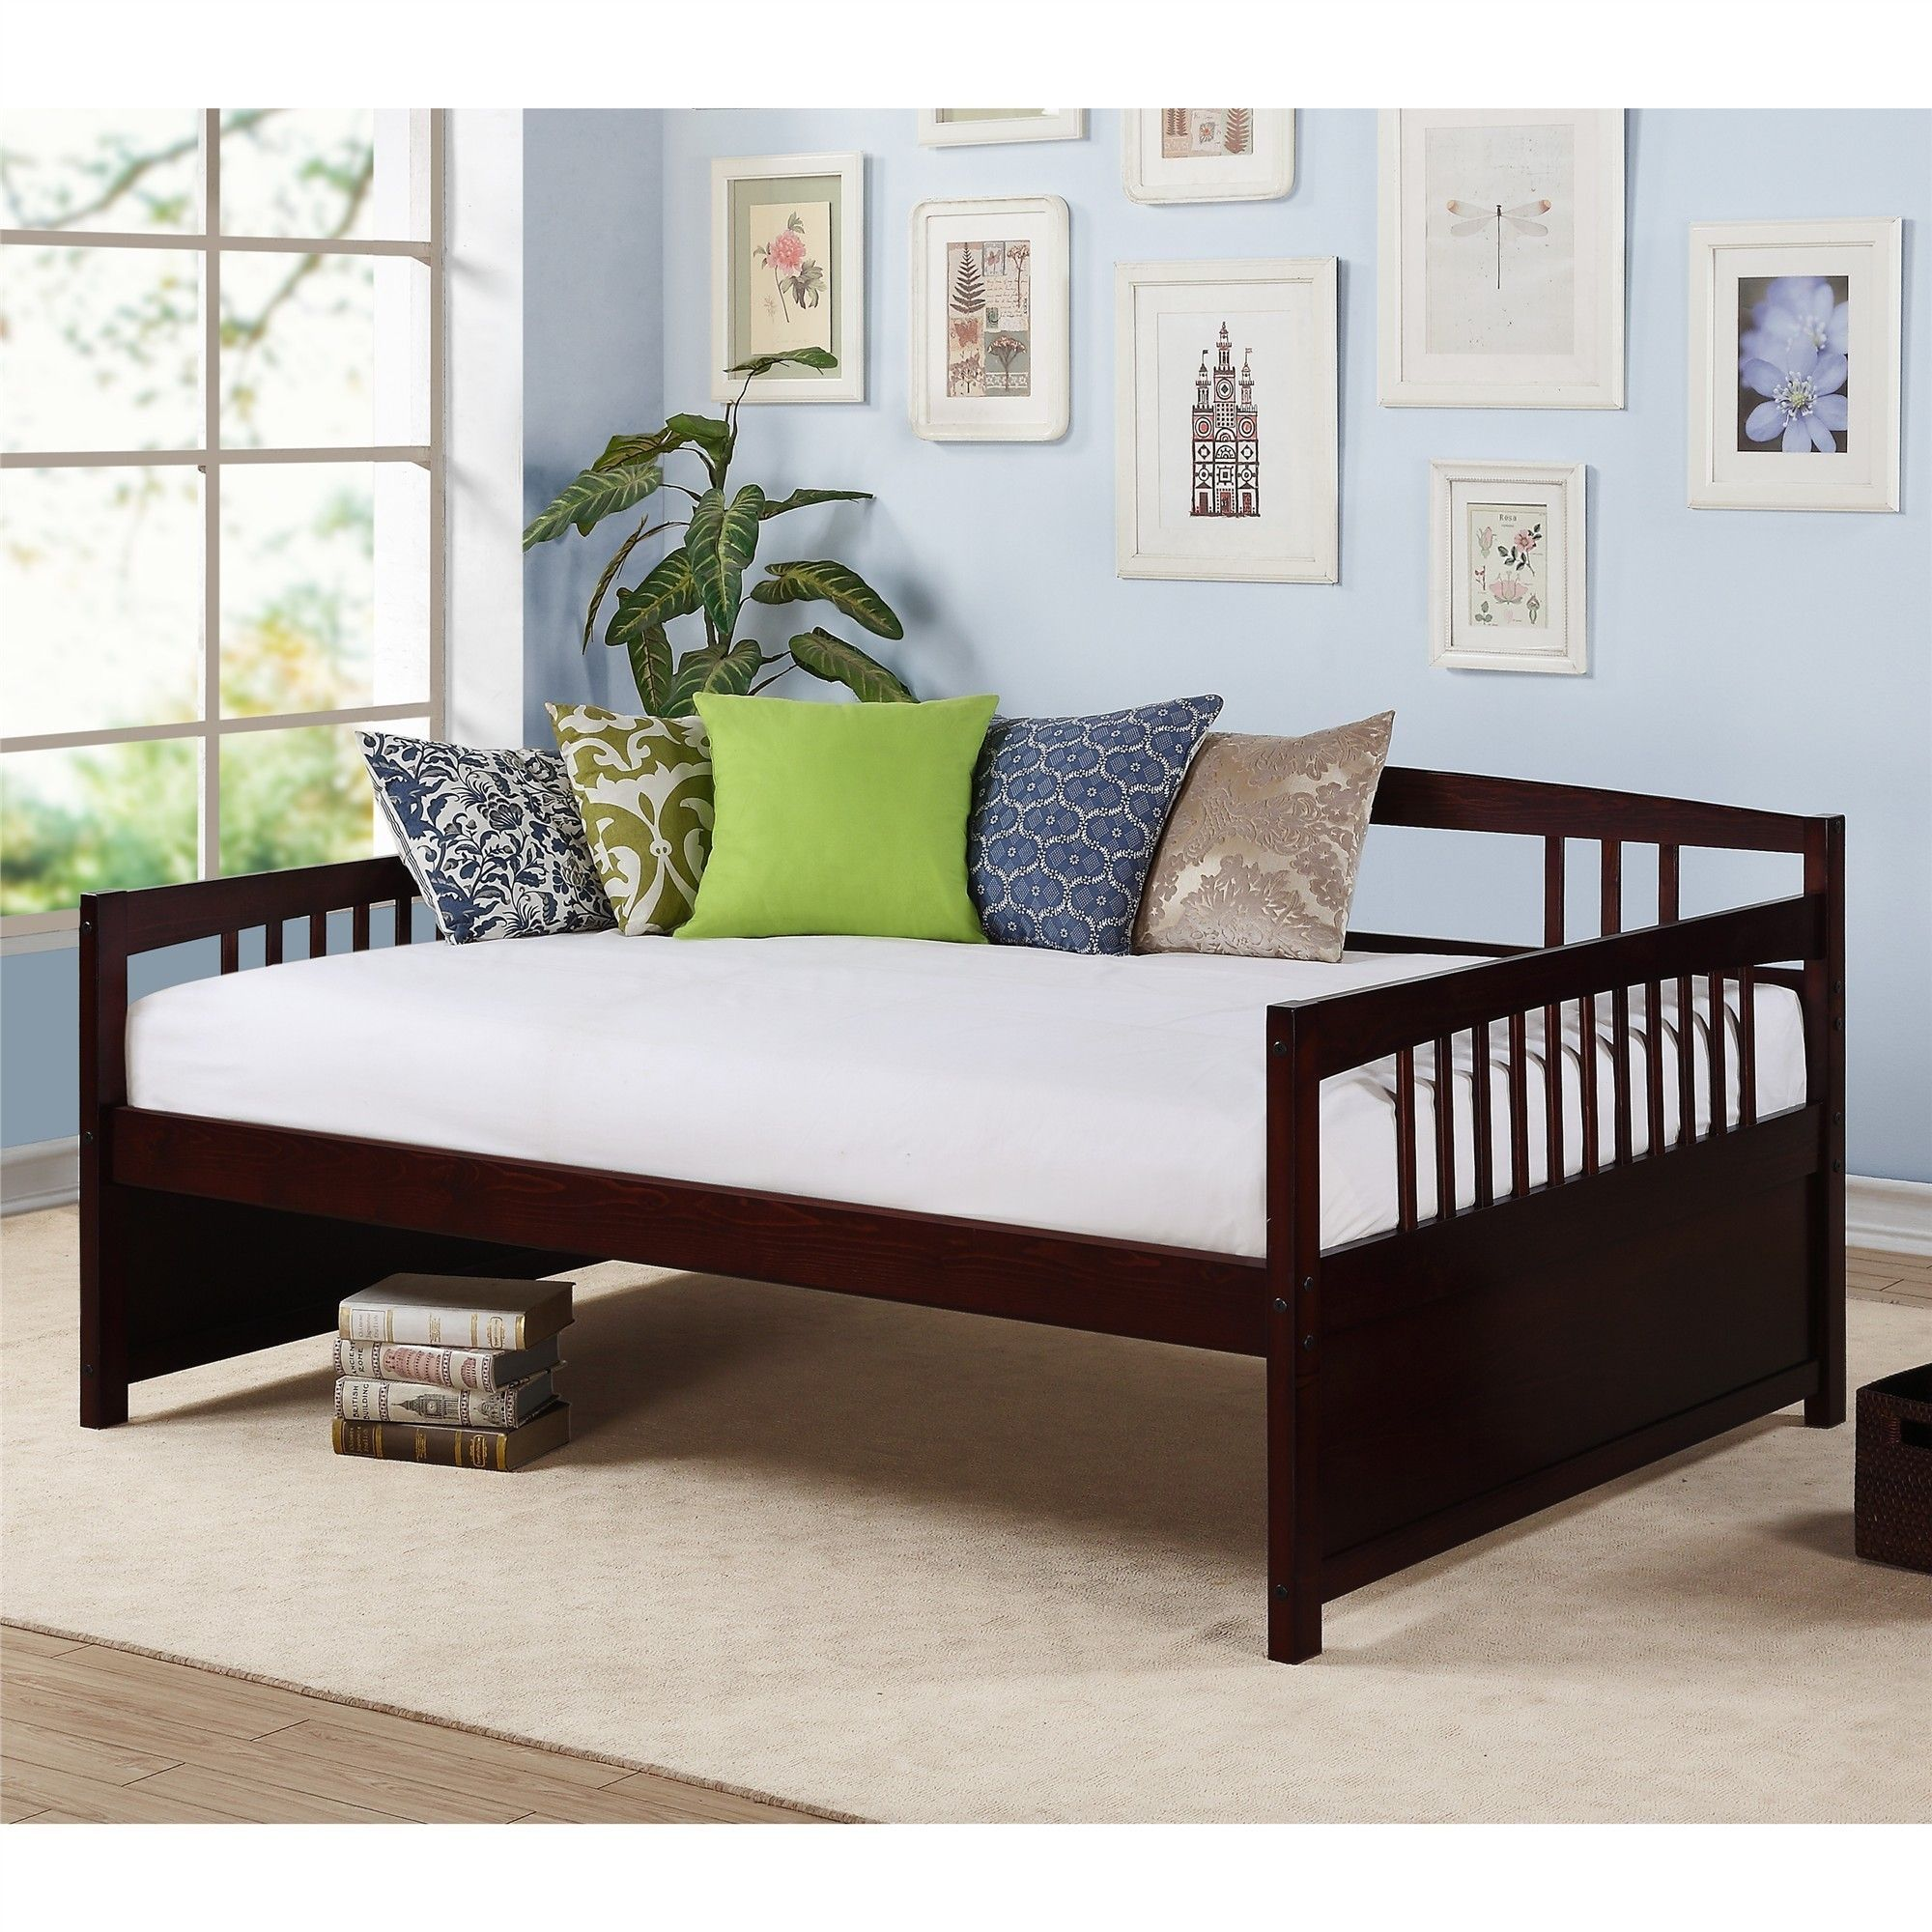 dorel living morgan espresso full size daybed daybed espresso and